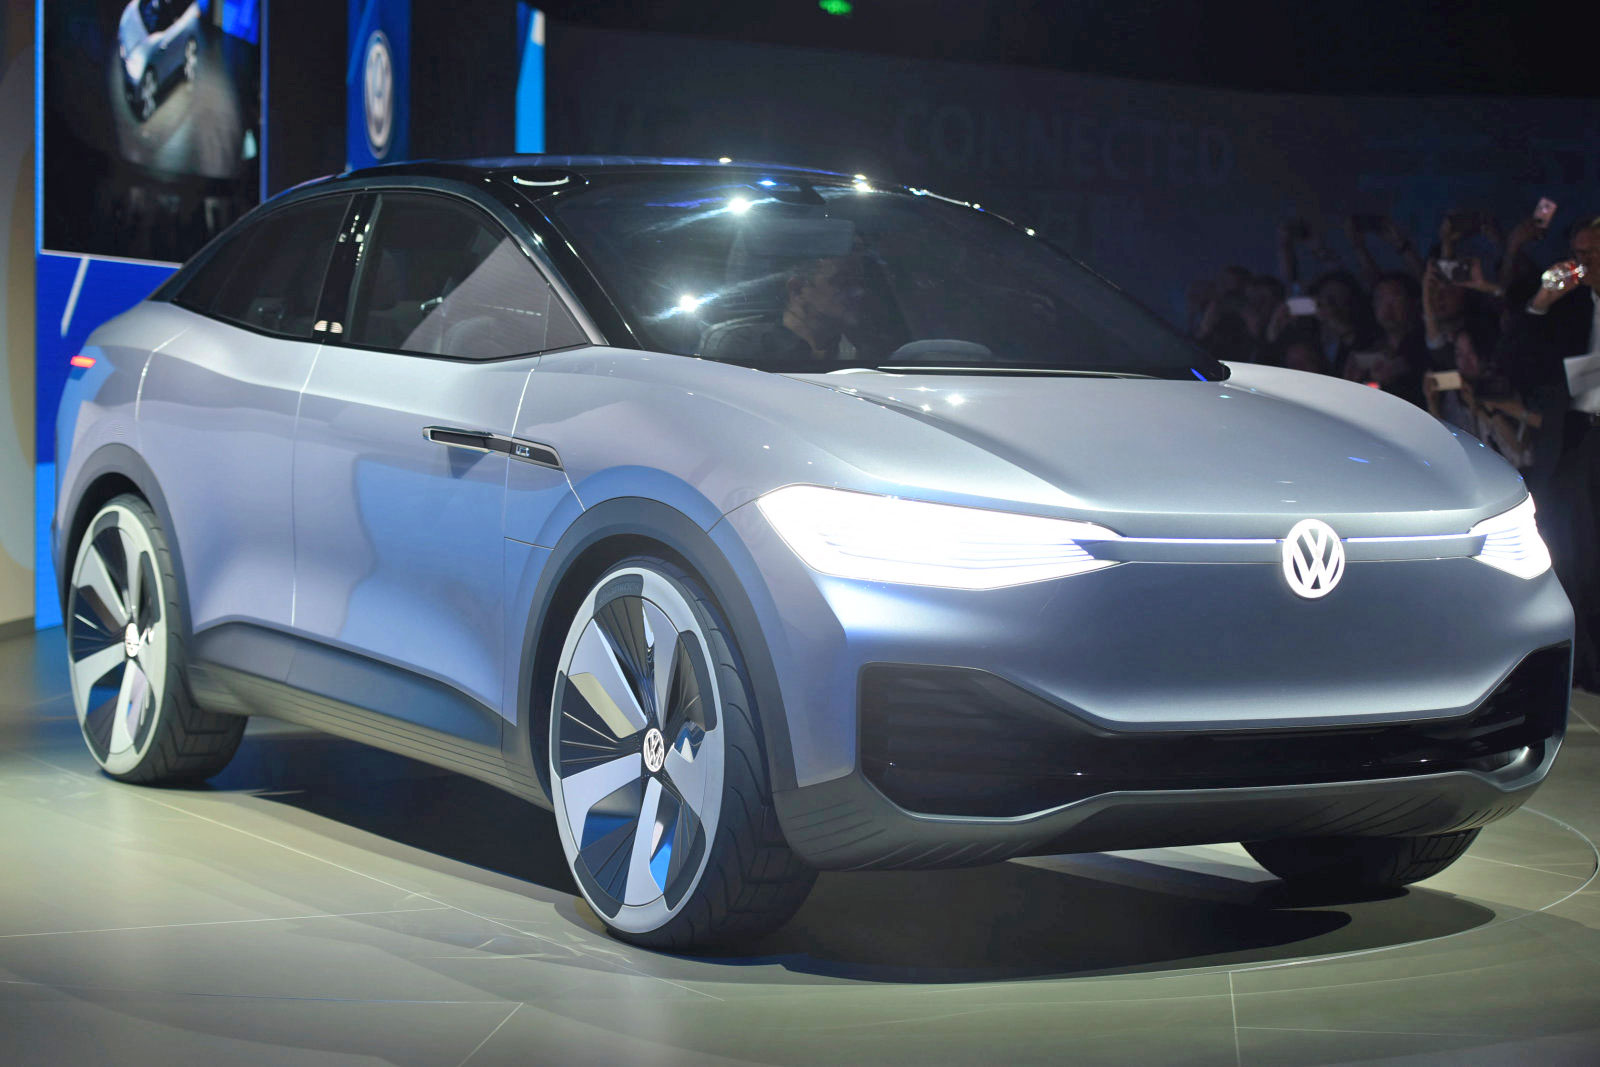 An Electric Car Without Compromises